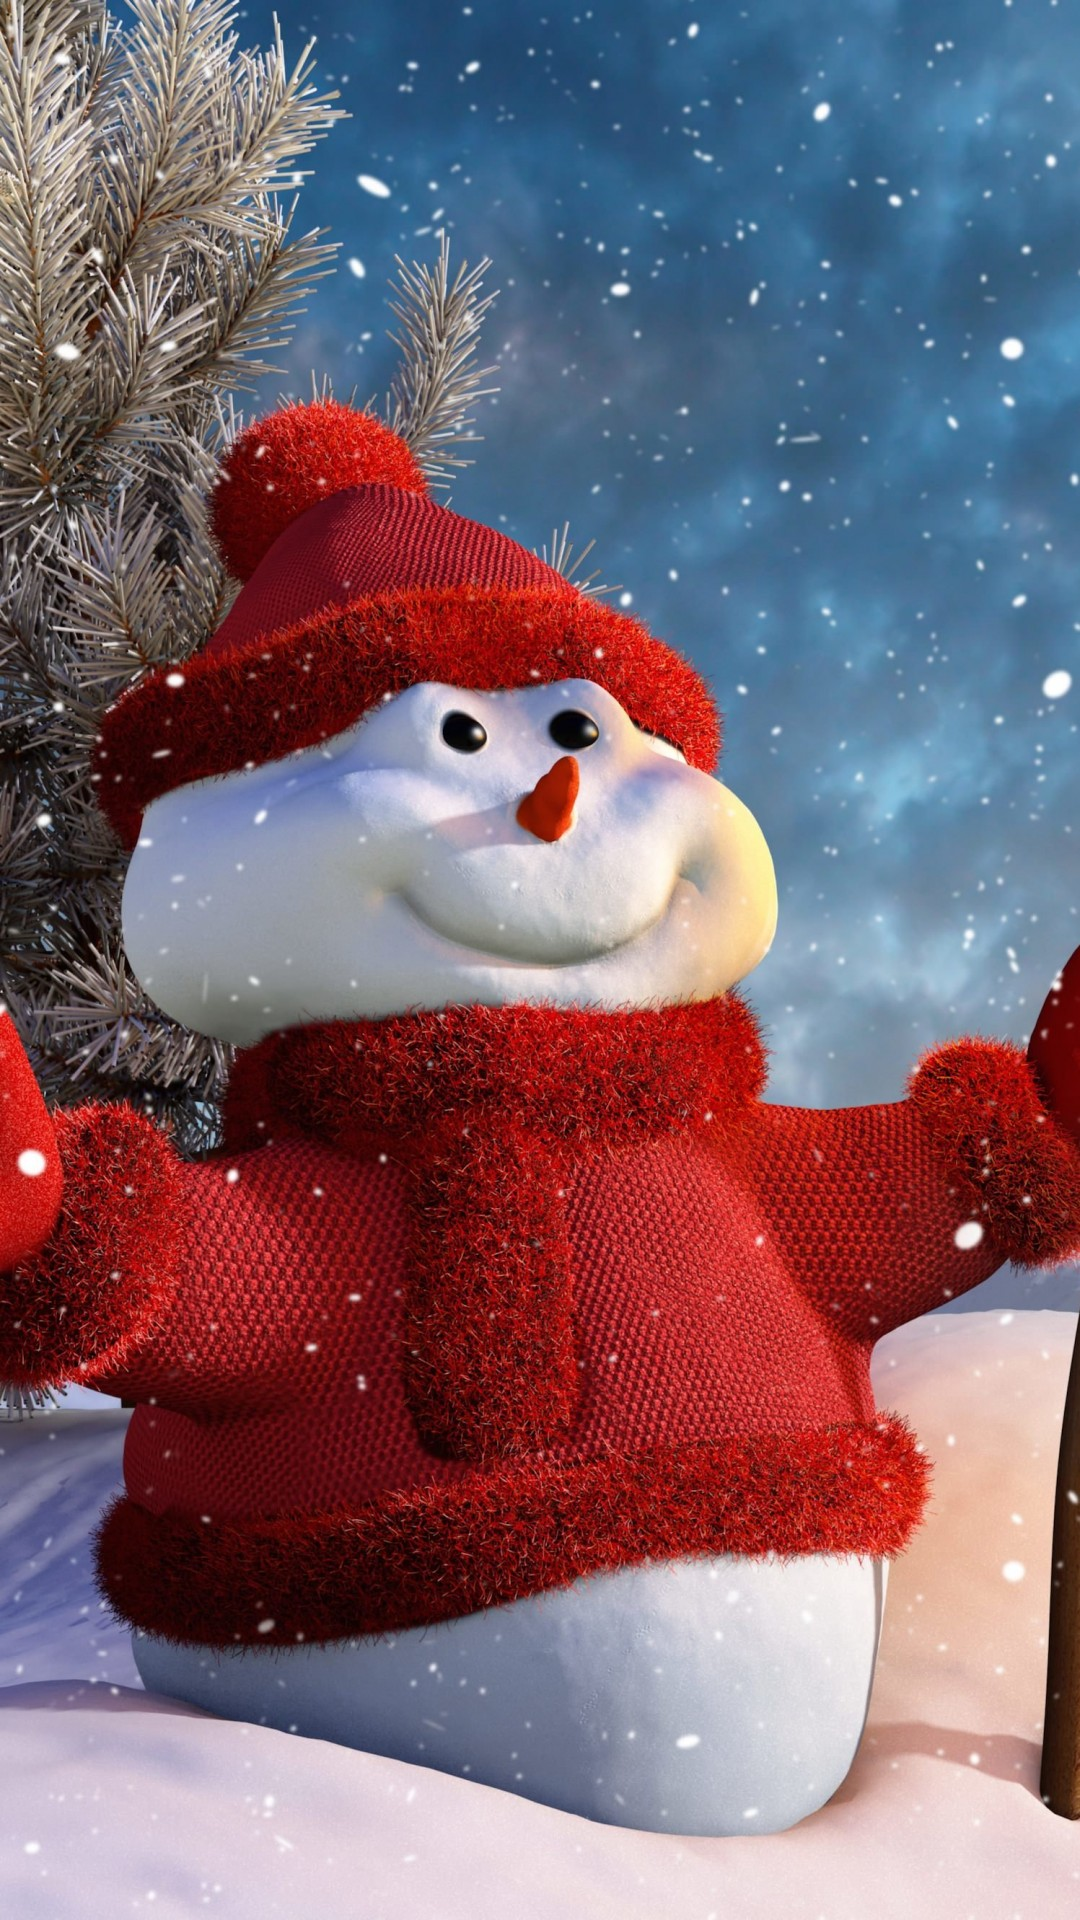 Christmas Snowman Wallpaper for SAMSUNG Galaxy S5